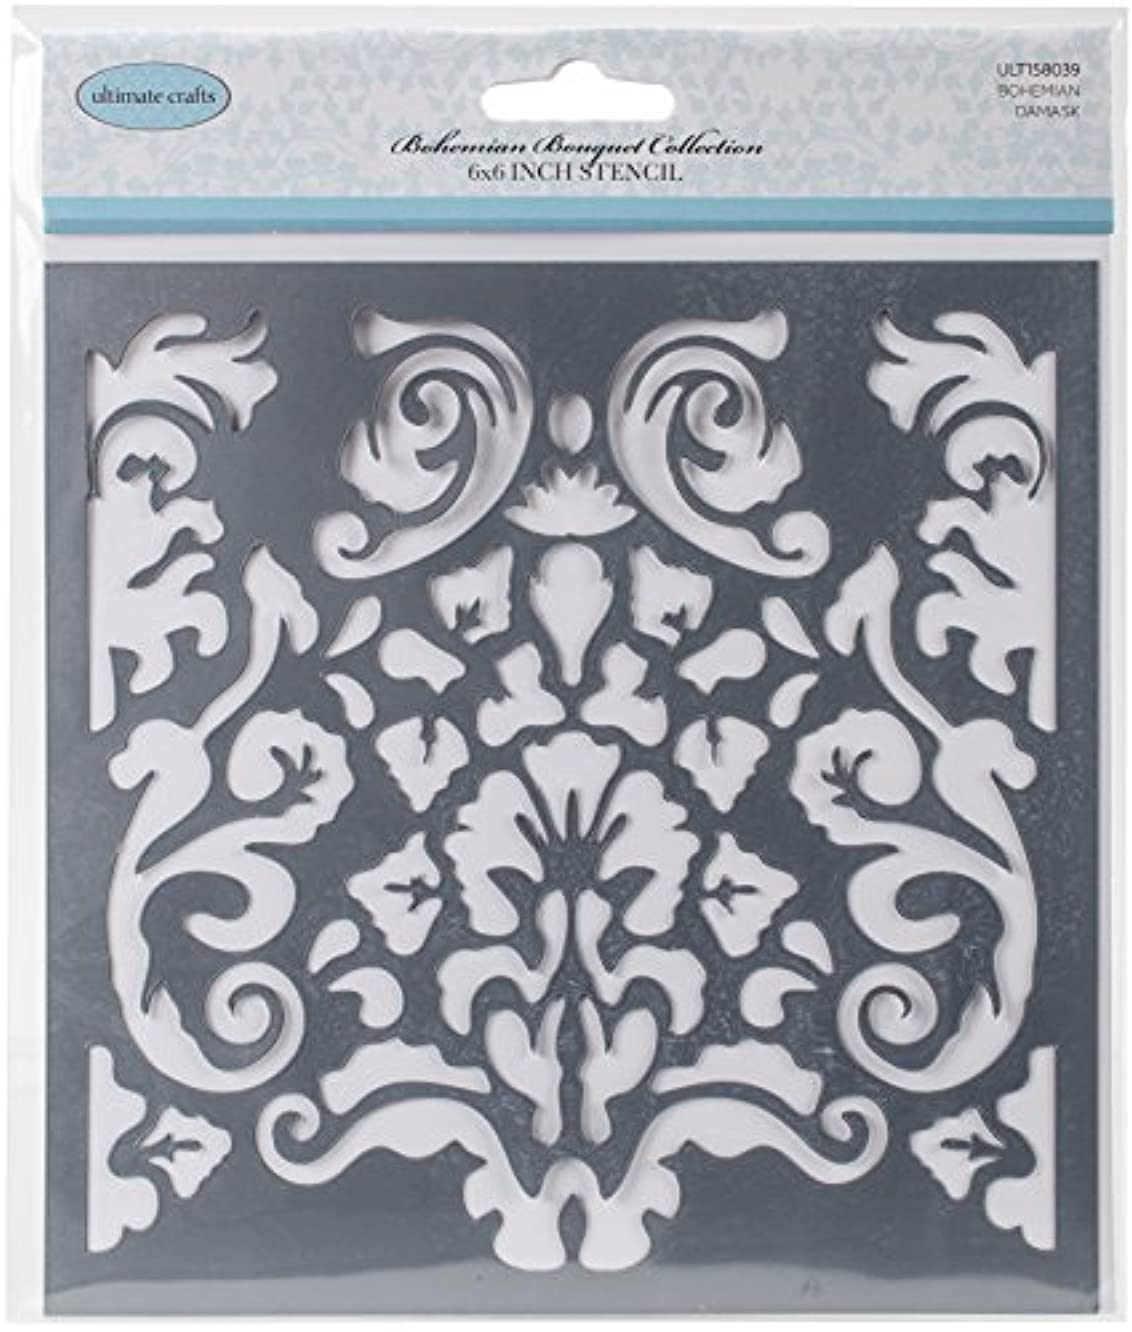 Artdeco Creations Damask Ultimate Crafts Bohemian Bouquet Stencil 6